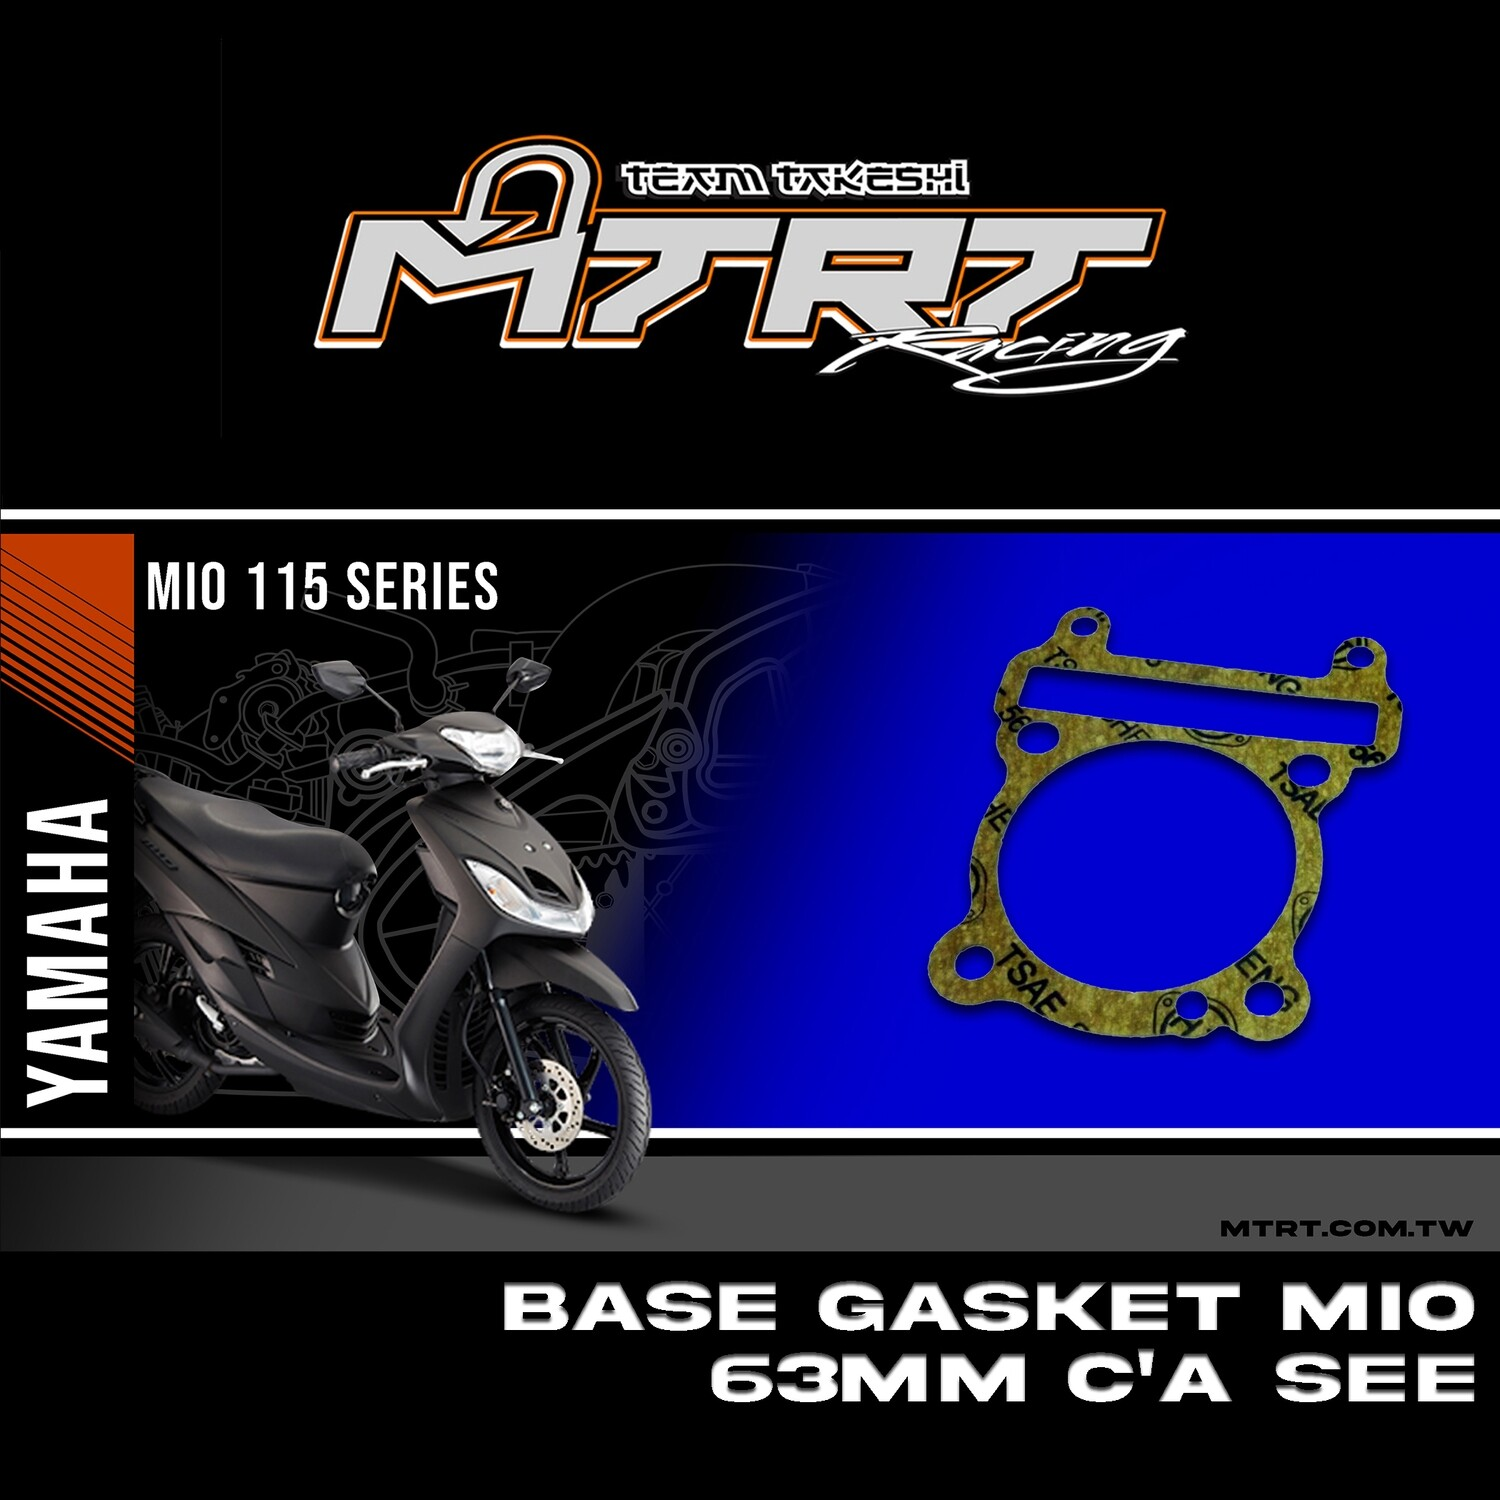 BASE GASKET  MIO  63MM  C'A SEE